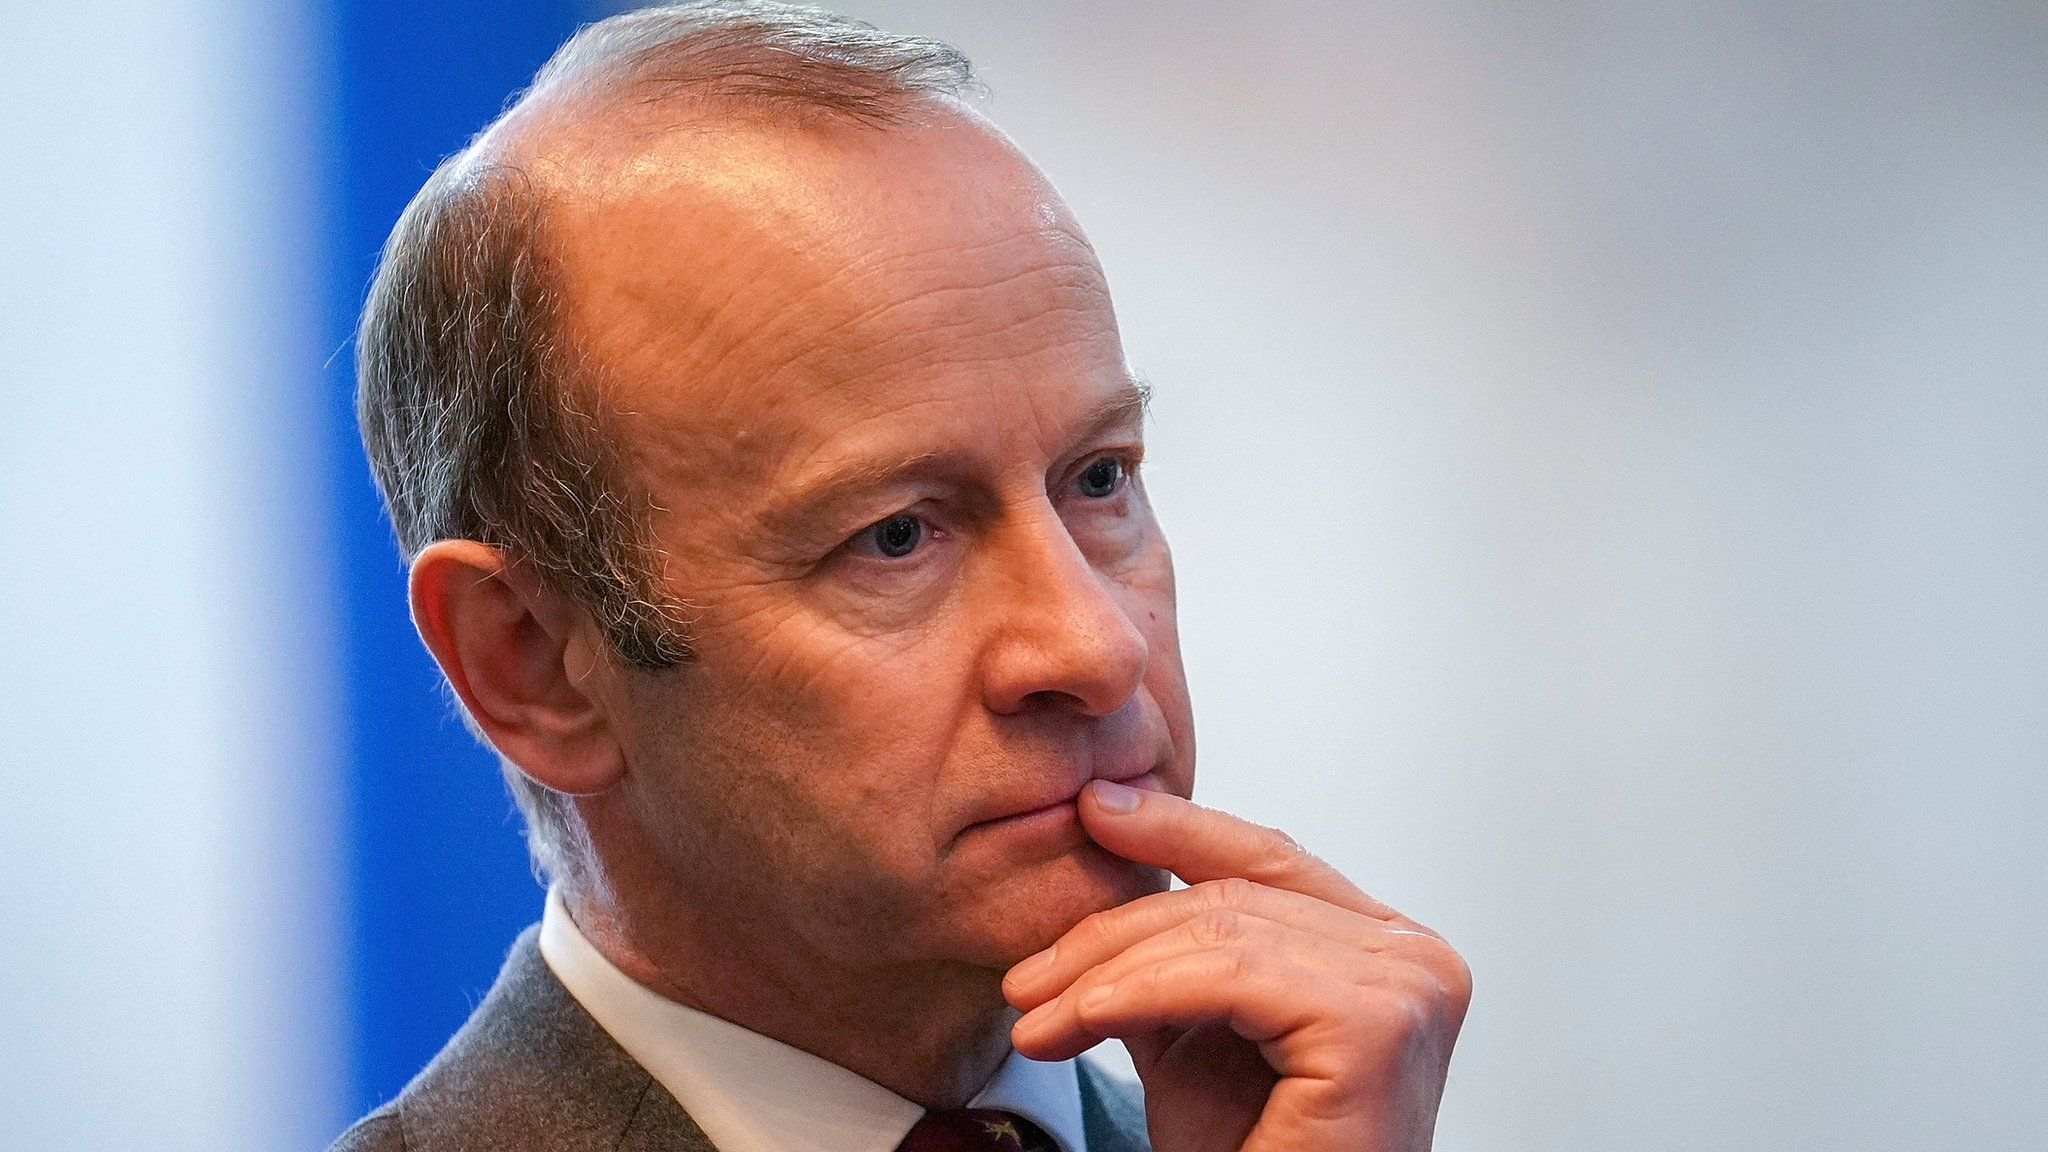 UKIP members vote to sack embattled leader Henry Bolton